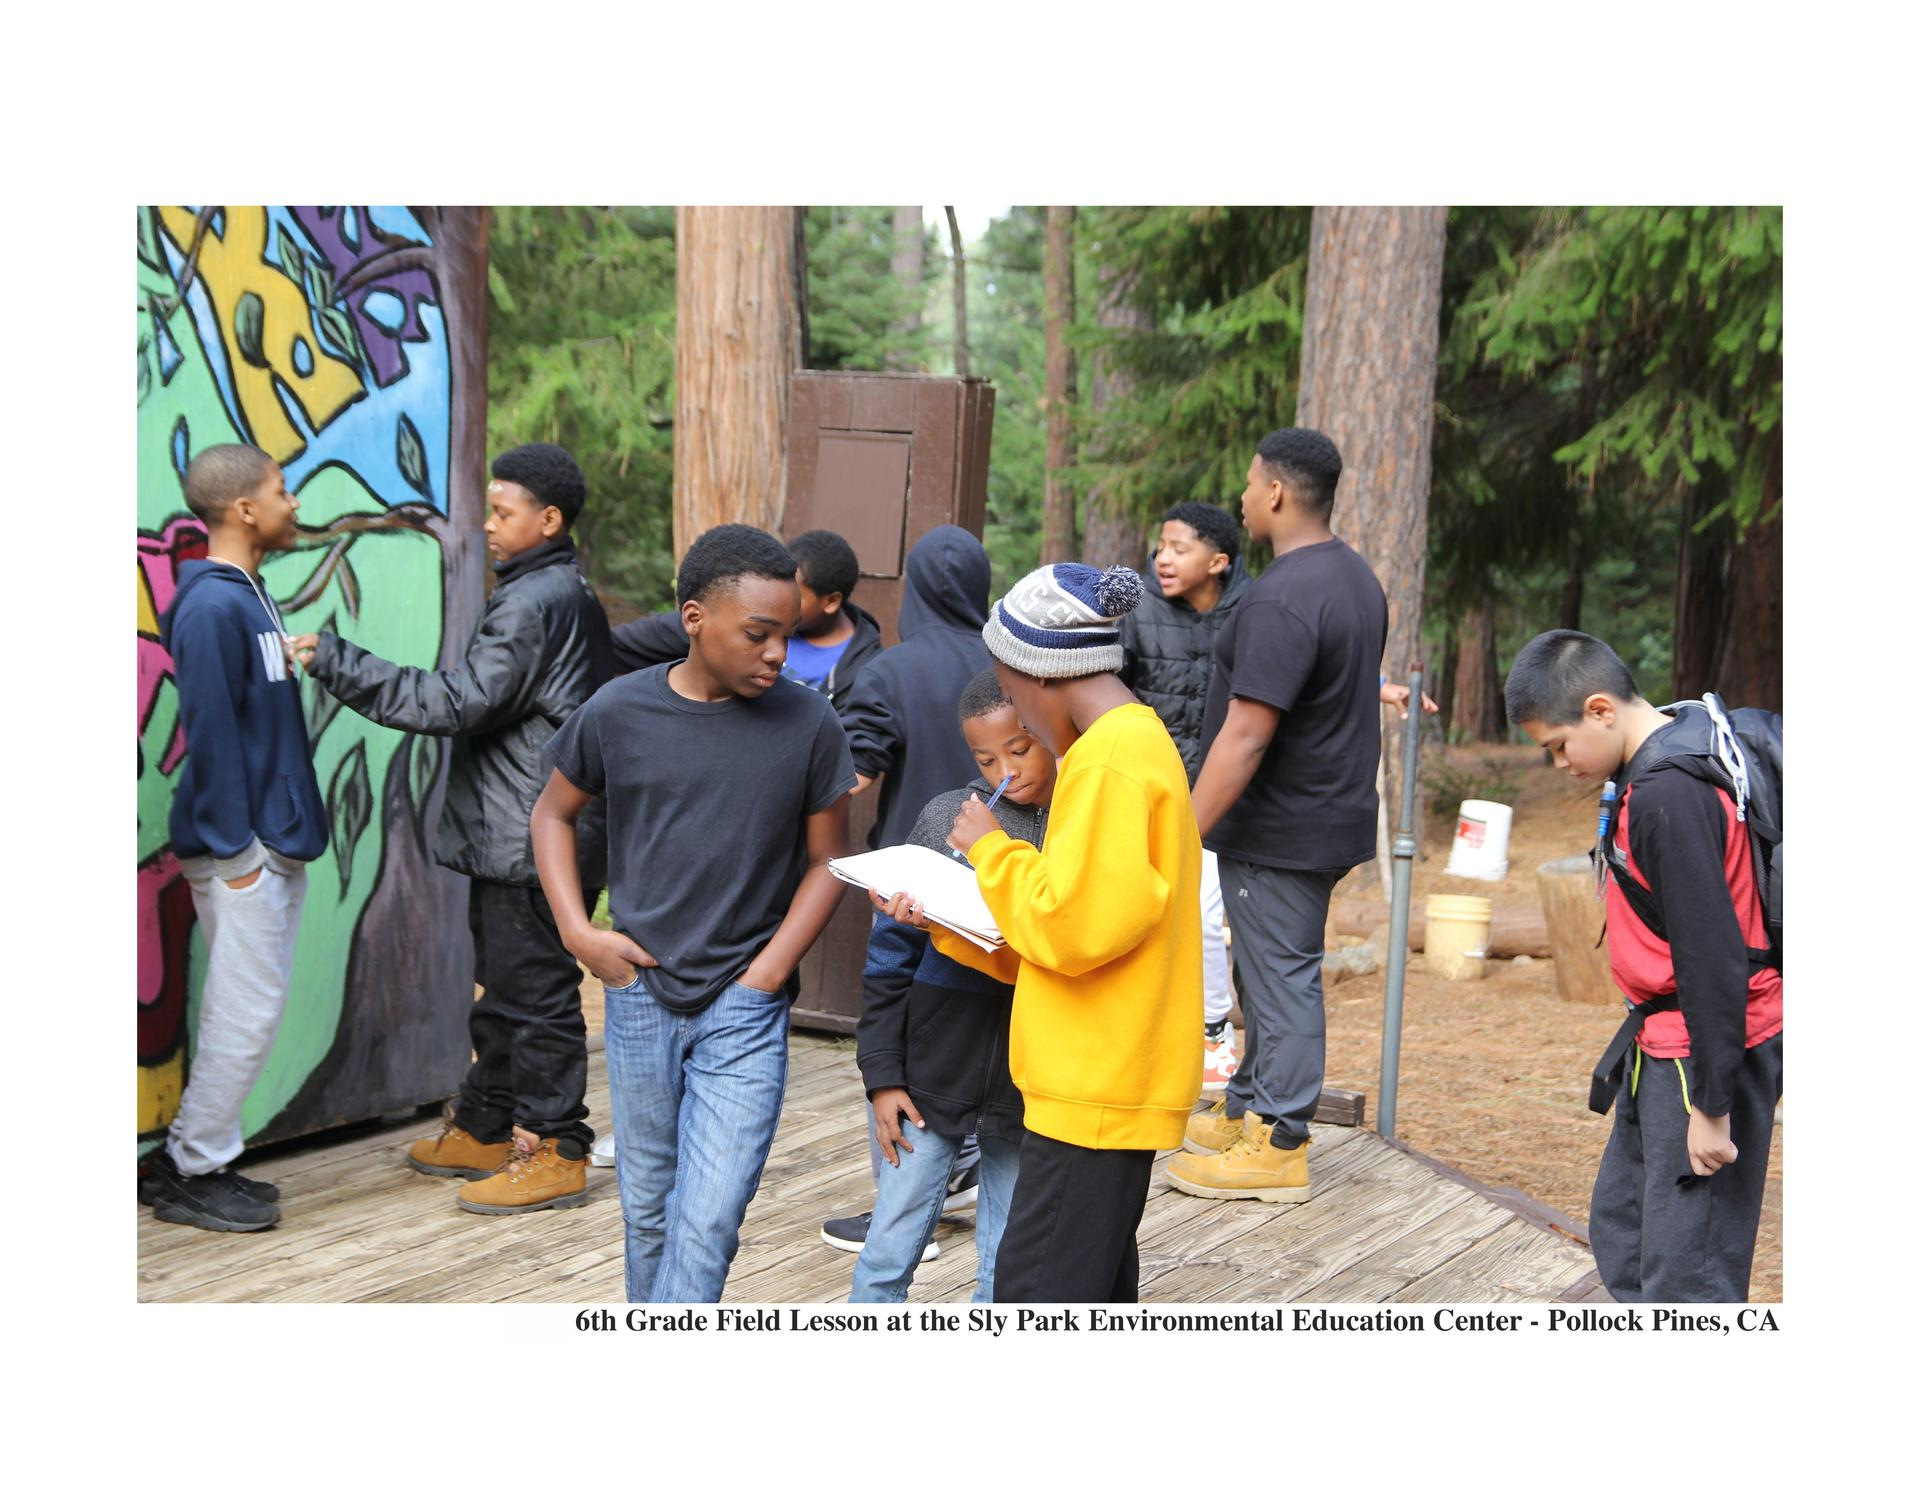 Scholars preparing for a stage presentation at Sly Park Environmental Learning Center